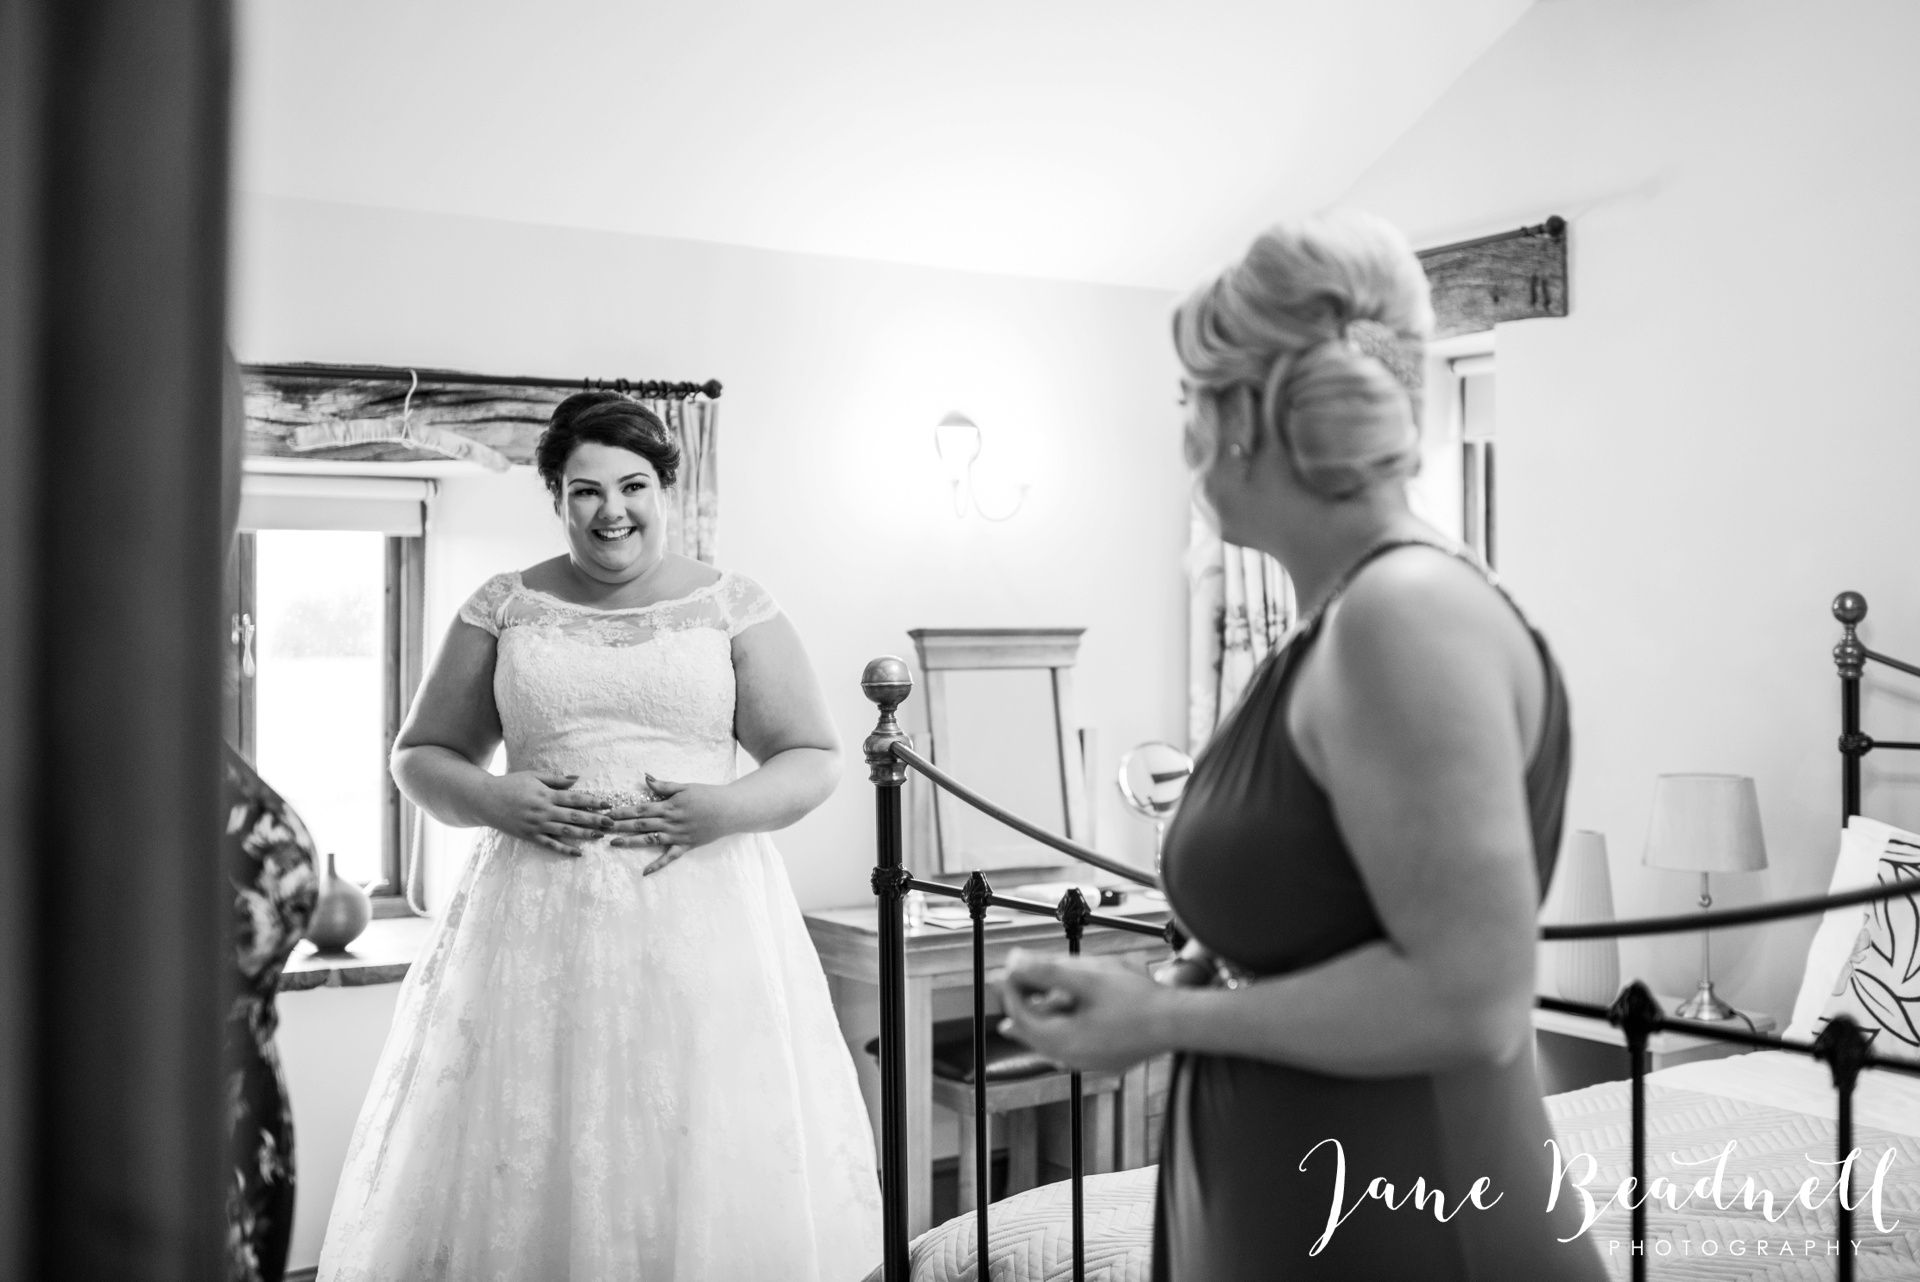 Cracoe Village Hall Wedding Photography by Jane Beadnell Photography fine art wedding photographer Yorkshire_0008